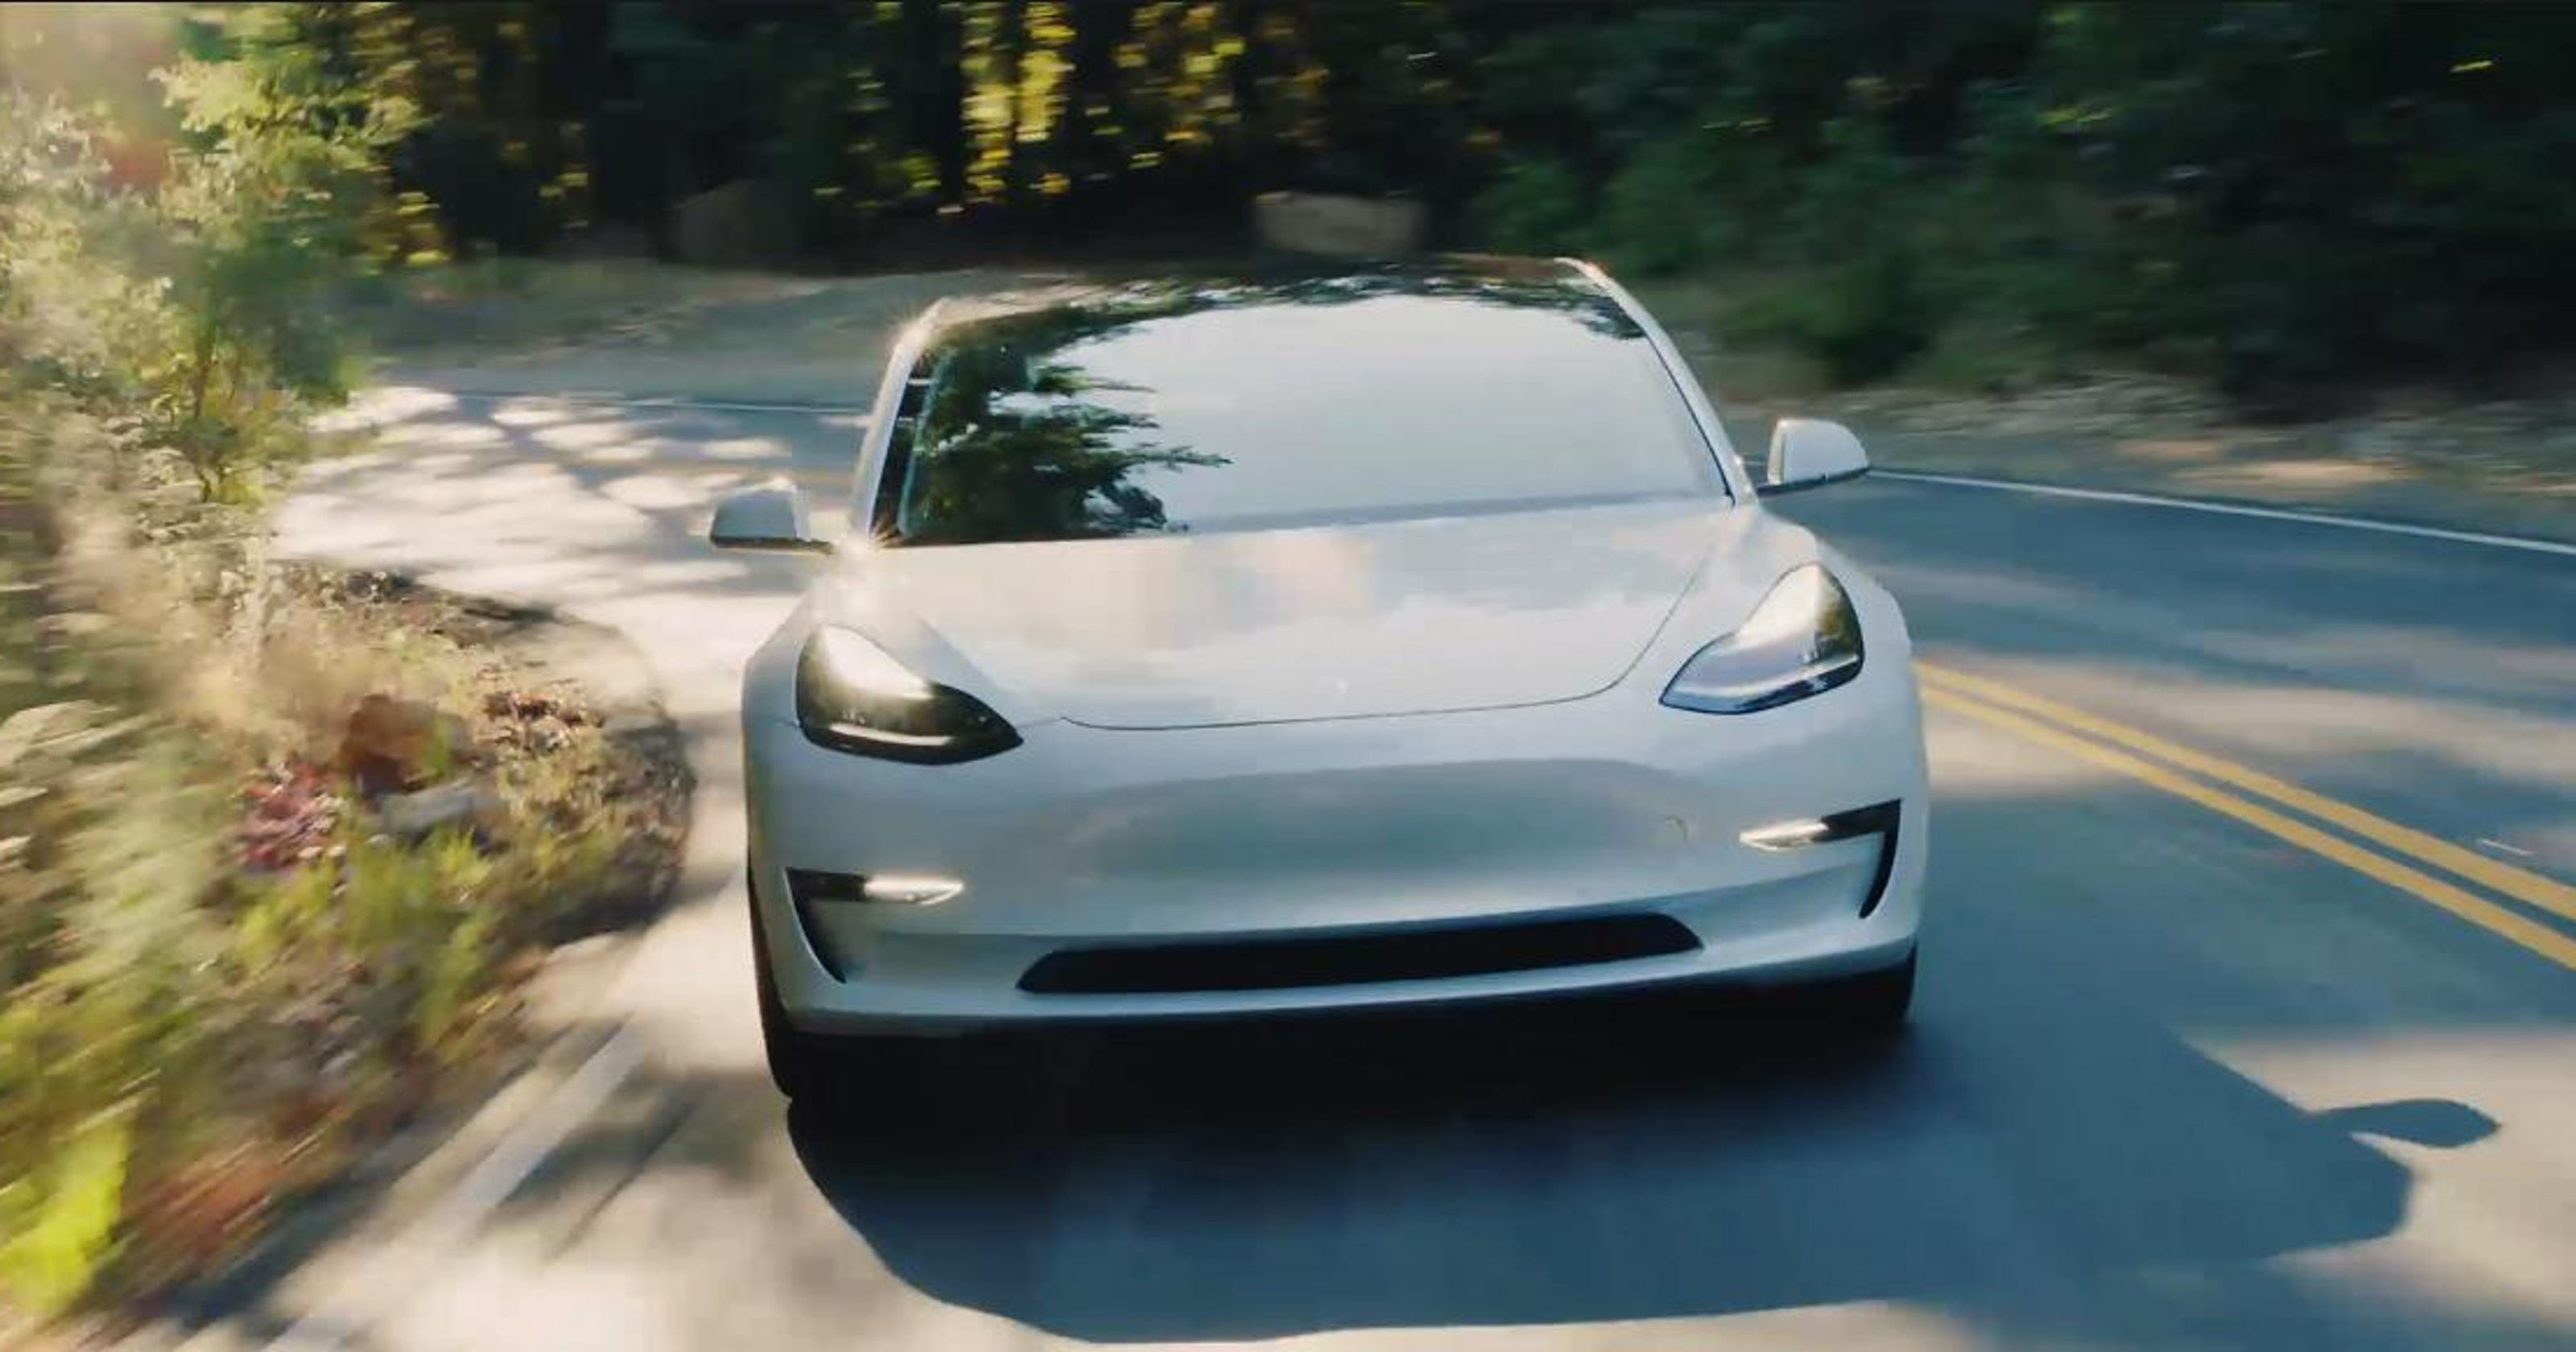 Tesla Model 3 may get Consumer Reports nod after all